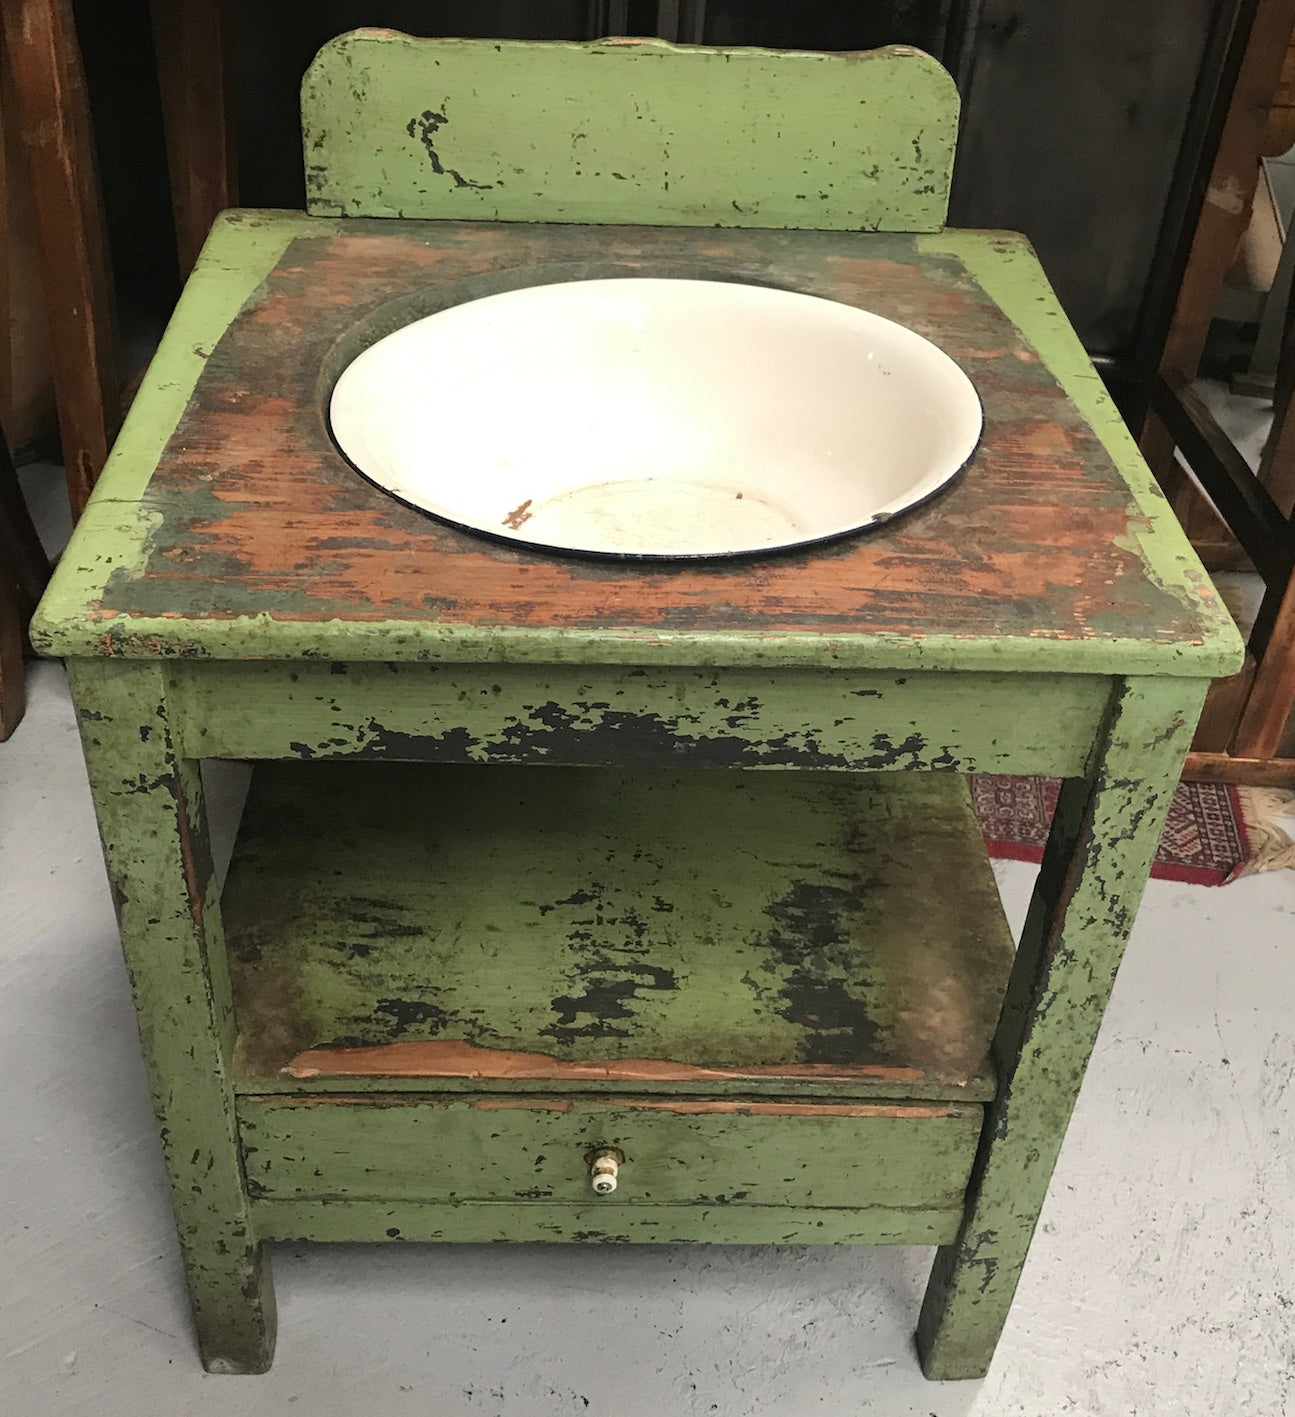 Vintage industrial European wooden wash stand with enamel bowl #2154